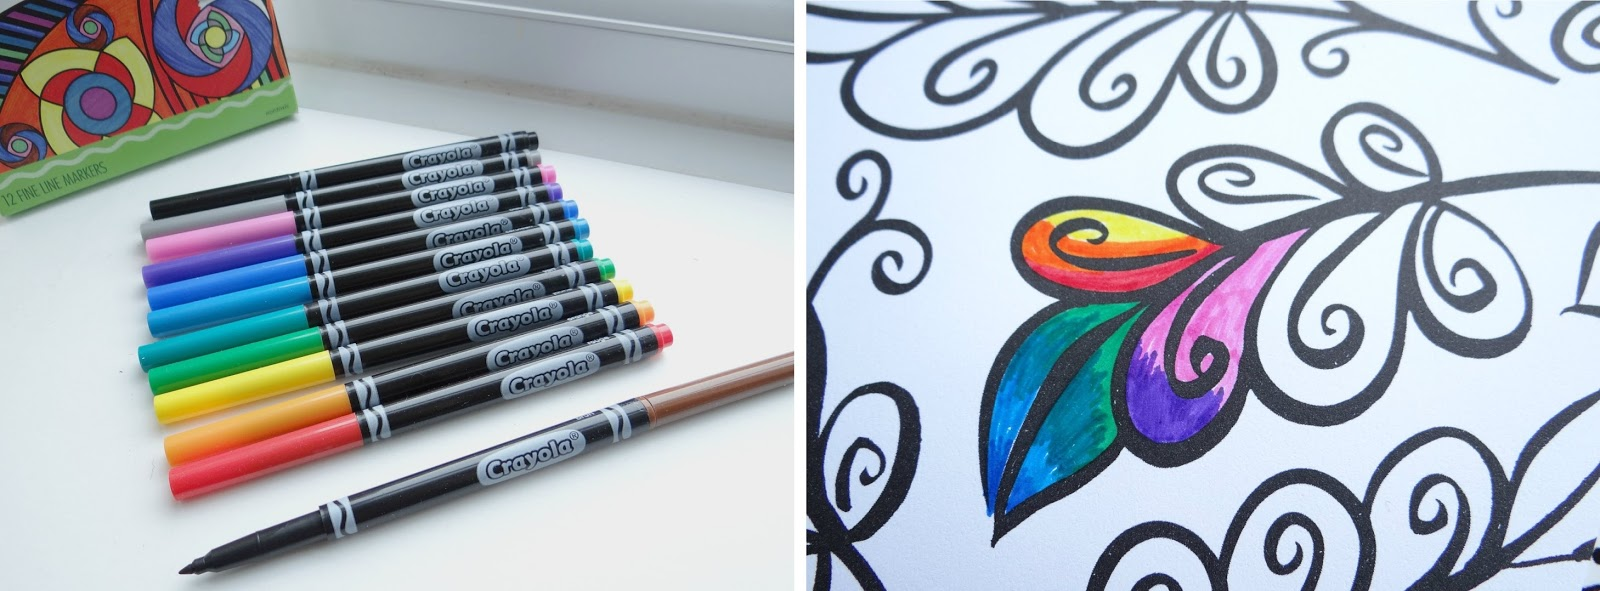 Crayola colouring, adult colouring, markers and pencils